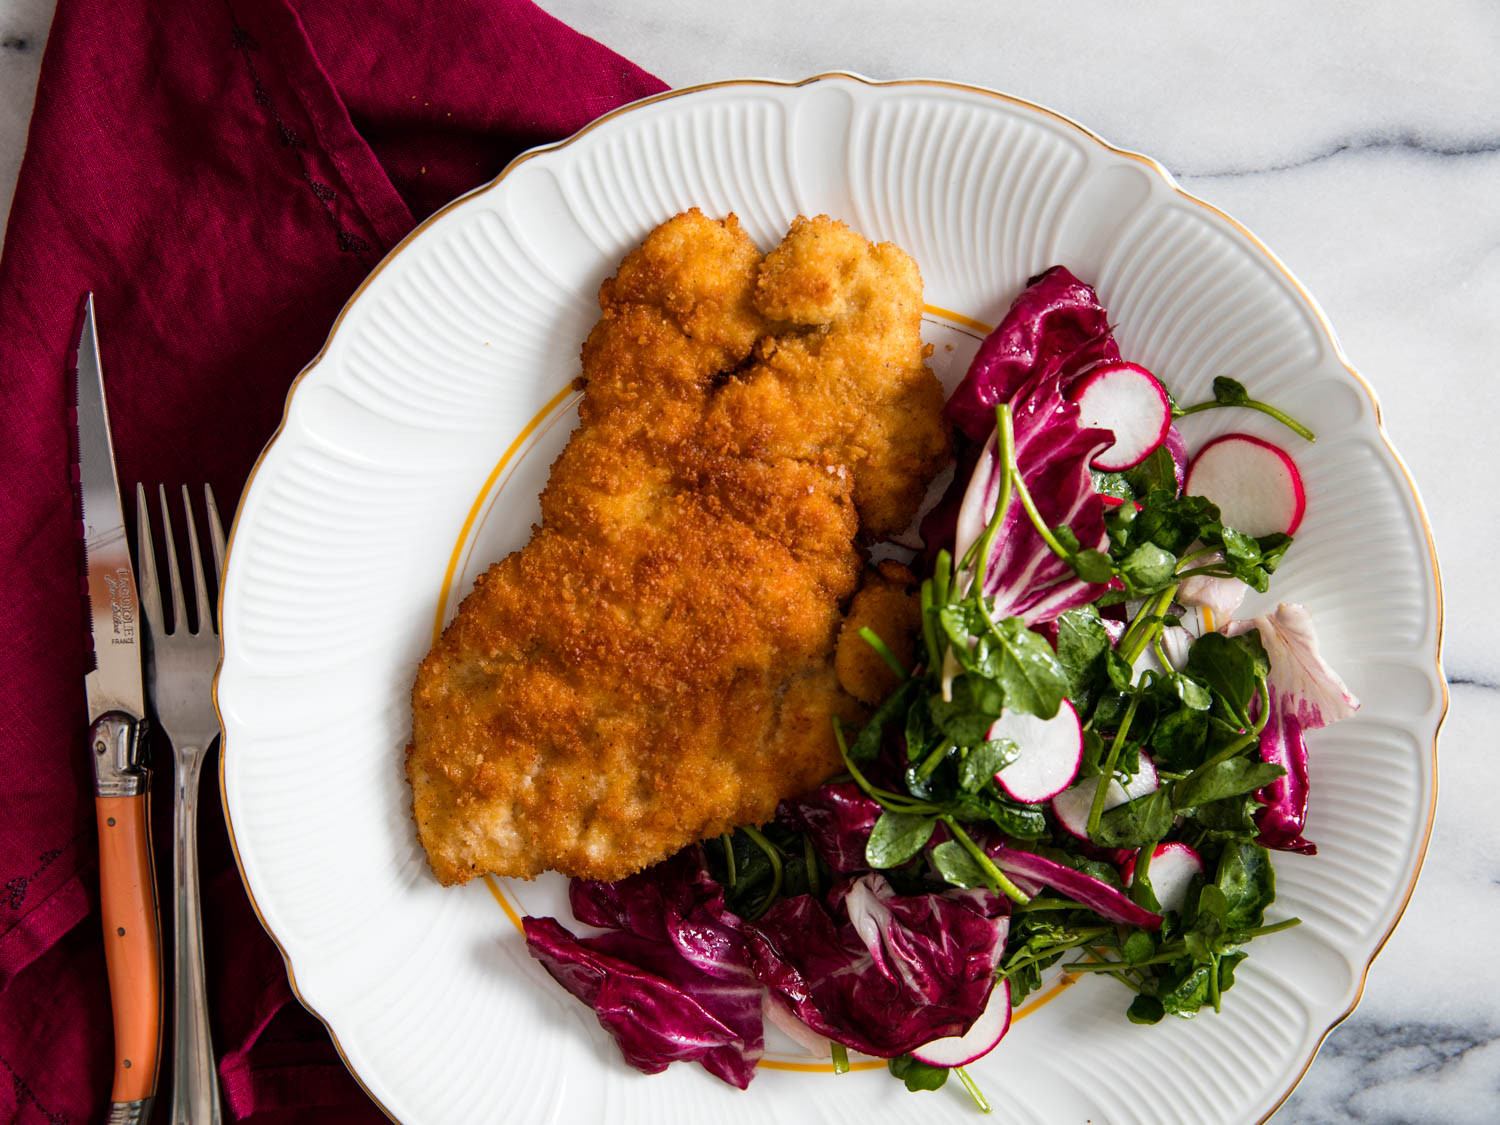 Healthy Veal Cutlet Recipes  Easy Breaded Fried Chicken Cutlets Recipe